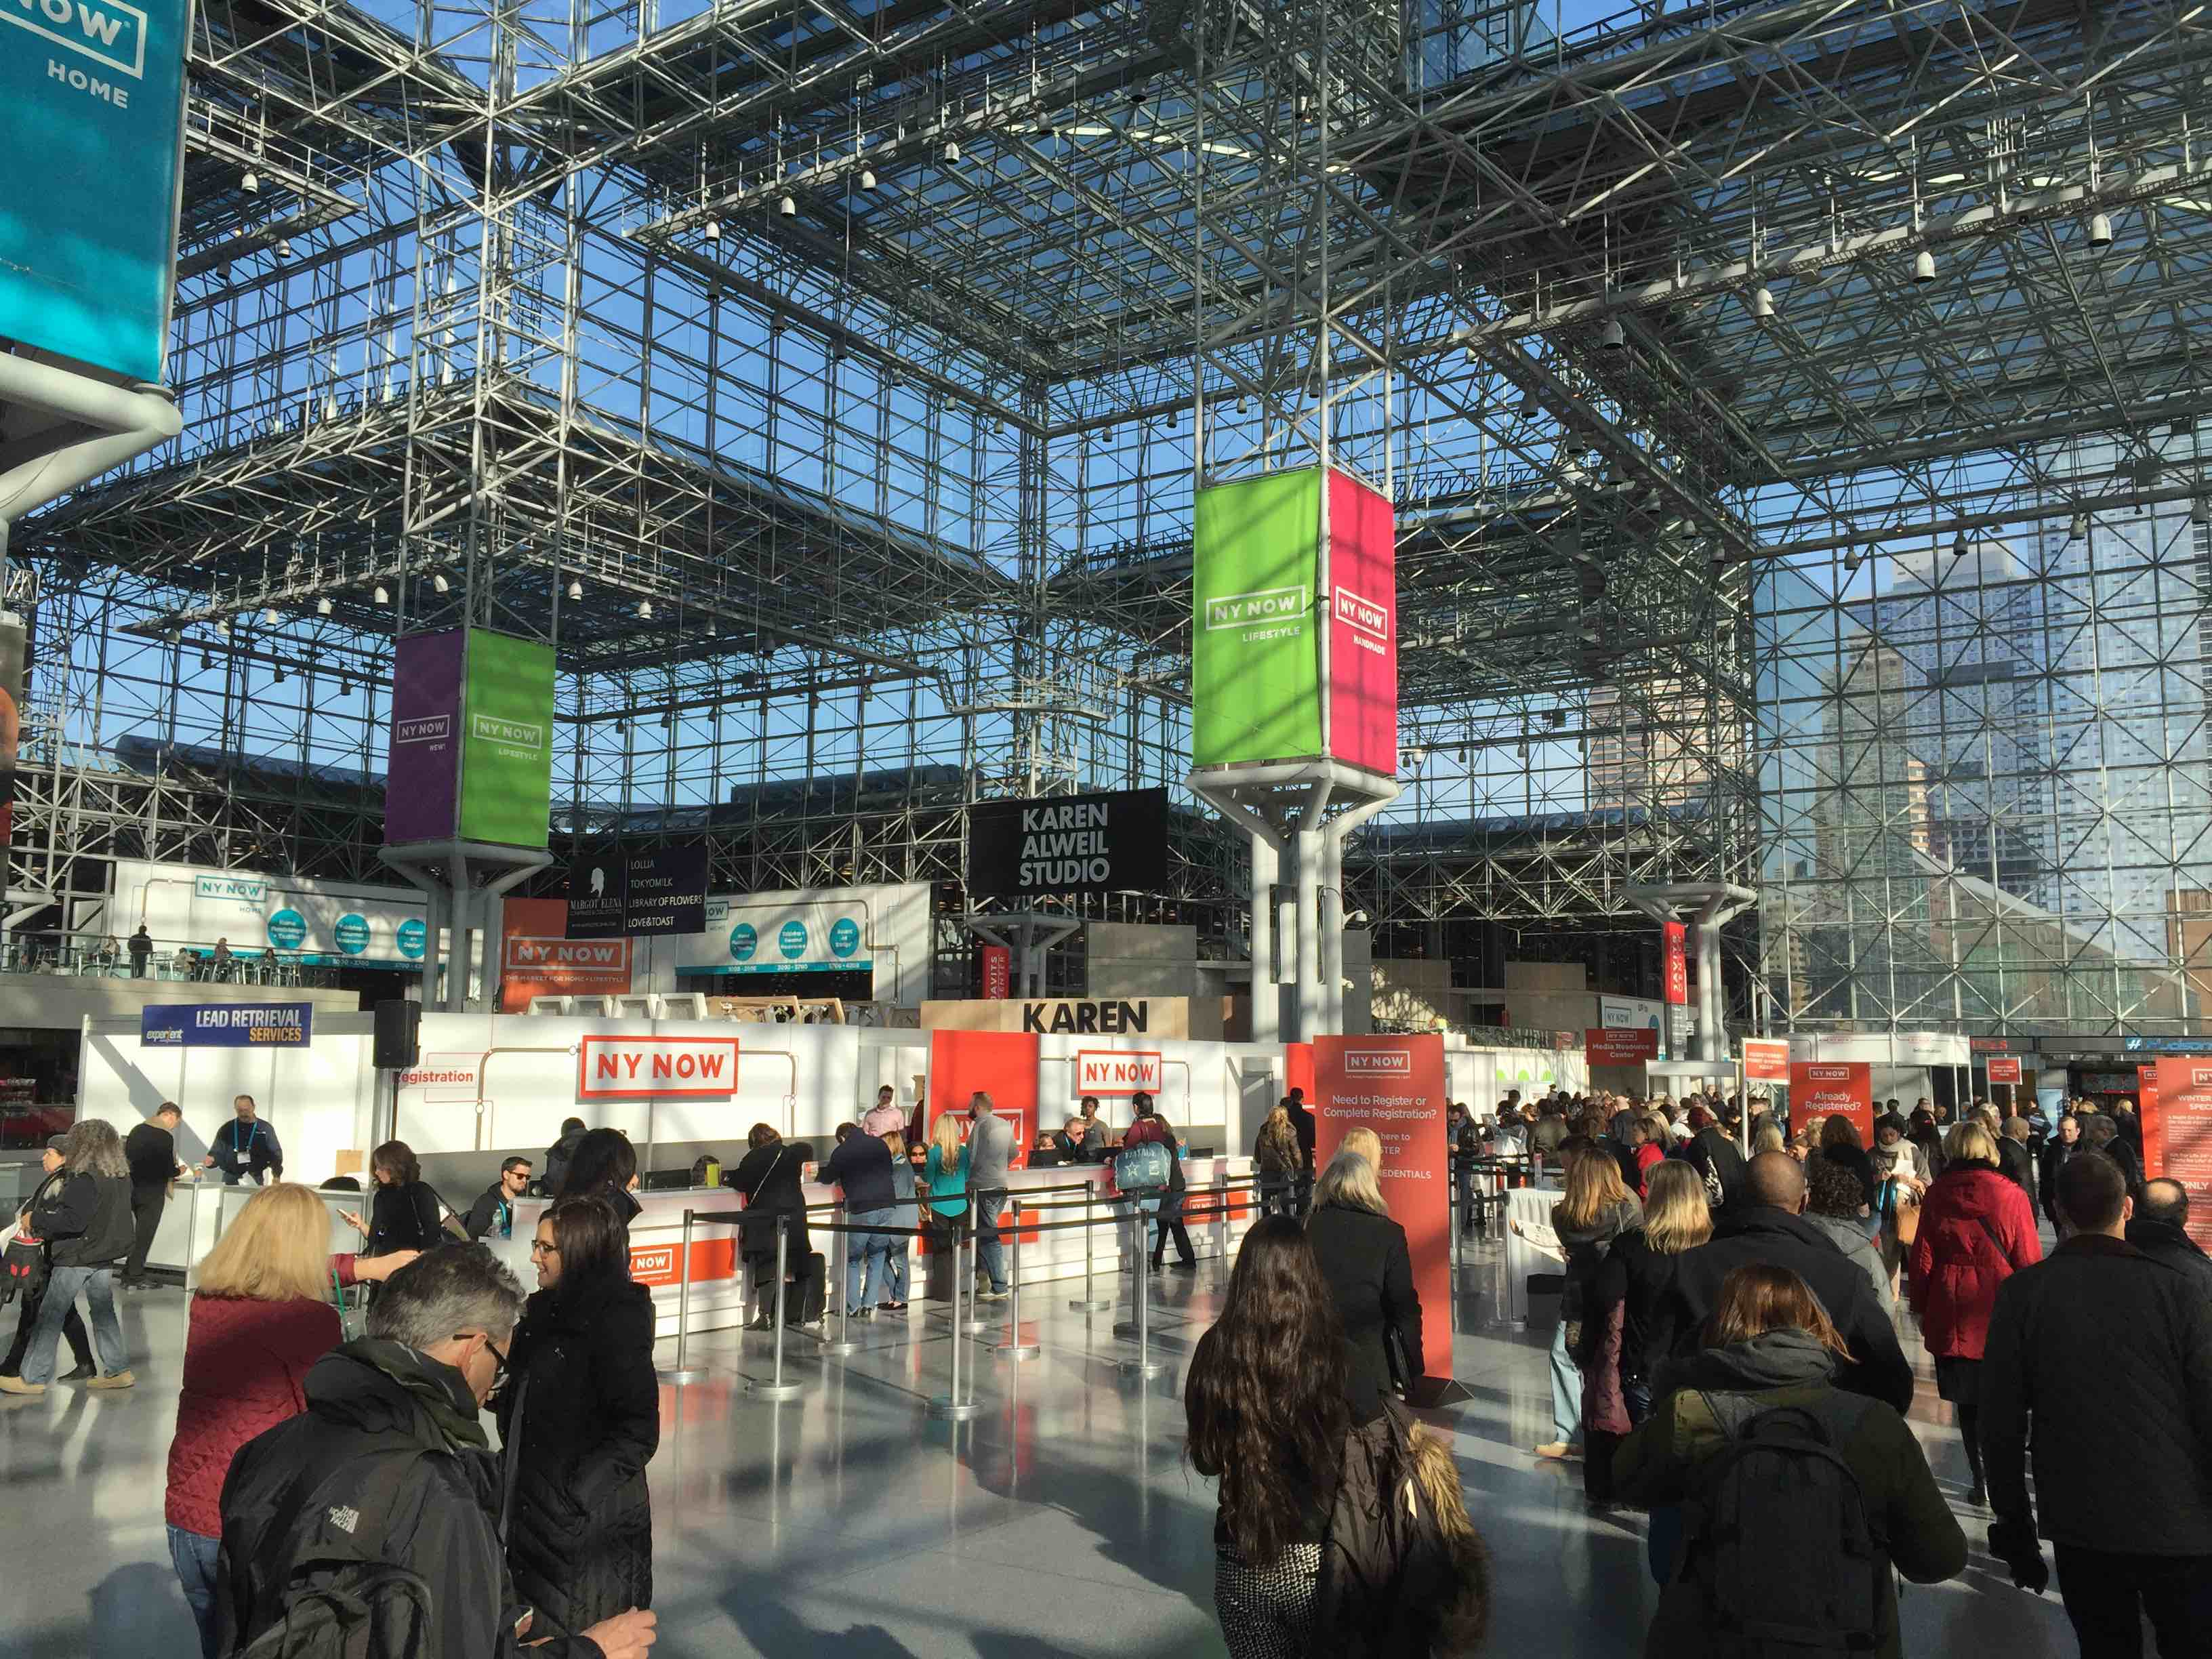 UKTI New York trade mission diary: Day 2 – Finding out the motivation behind trade shows